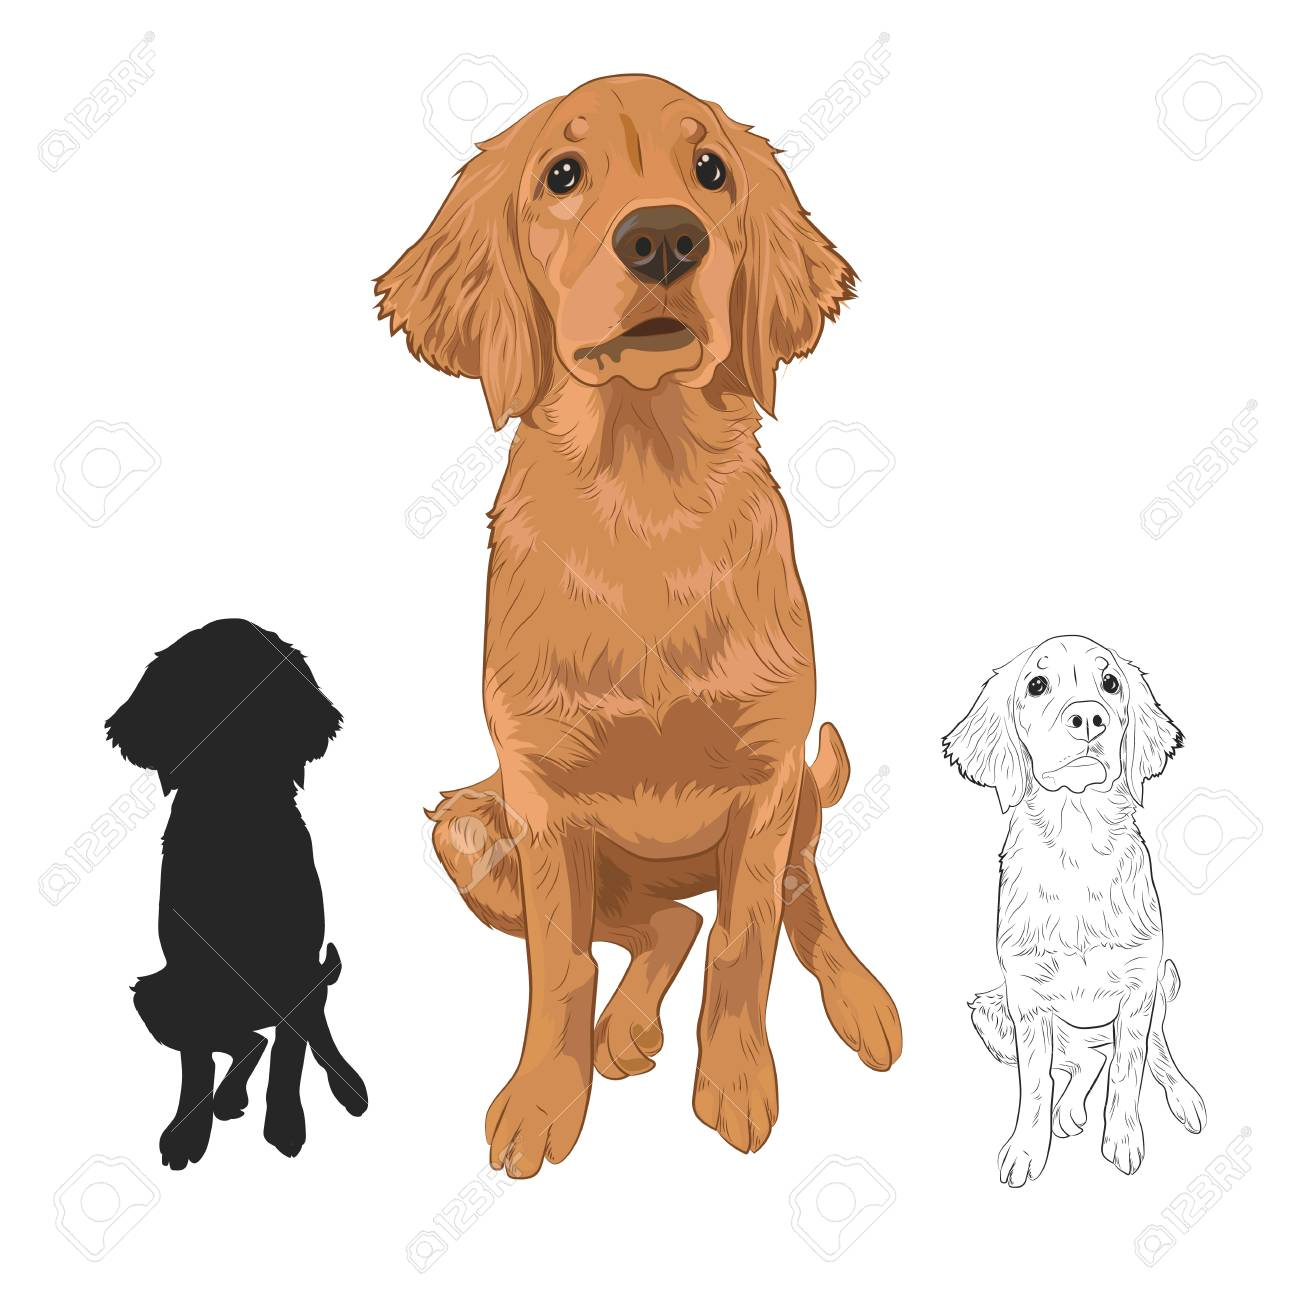 Golden Retriever Puppy Isolated On White Background Cute Purebred Royalty Free Cliparts Vectors And Stock Illustration Image 97421337